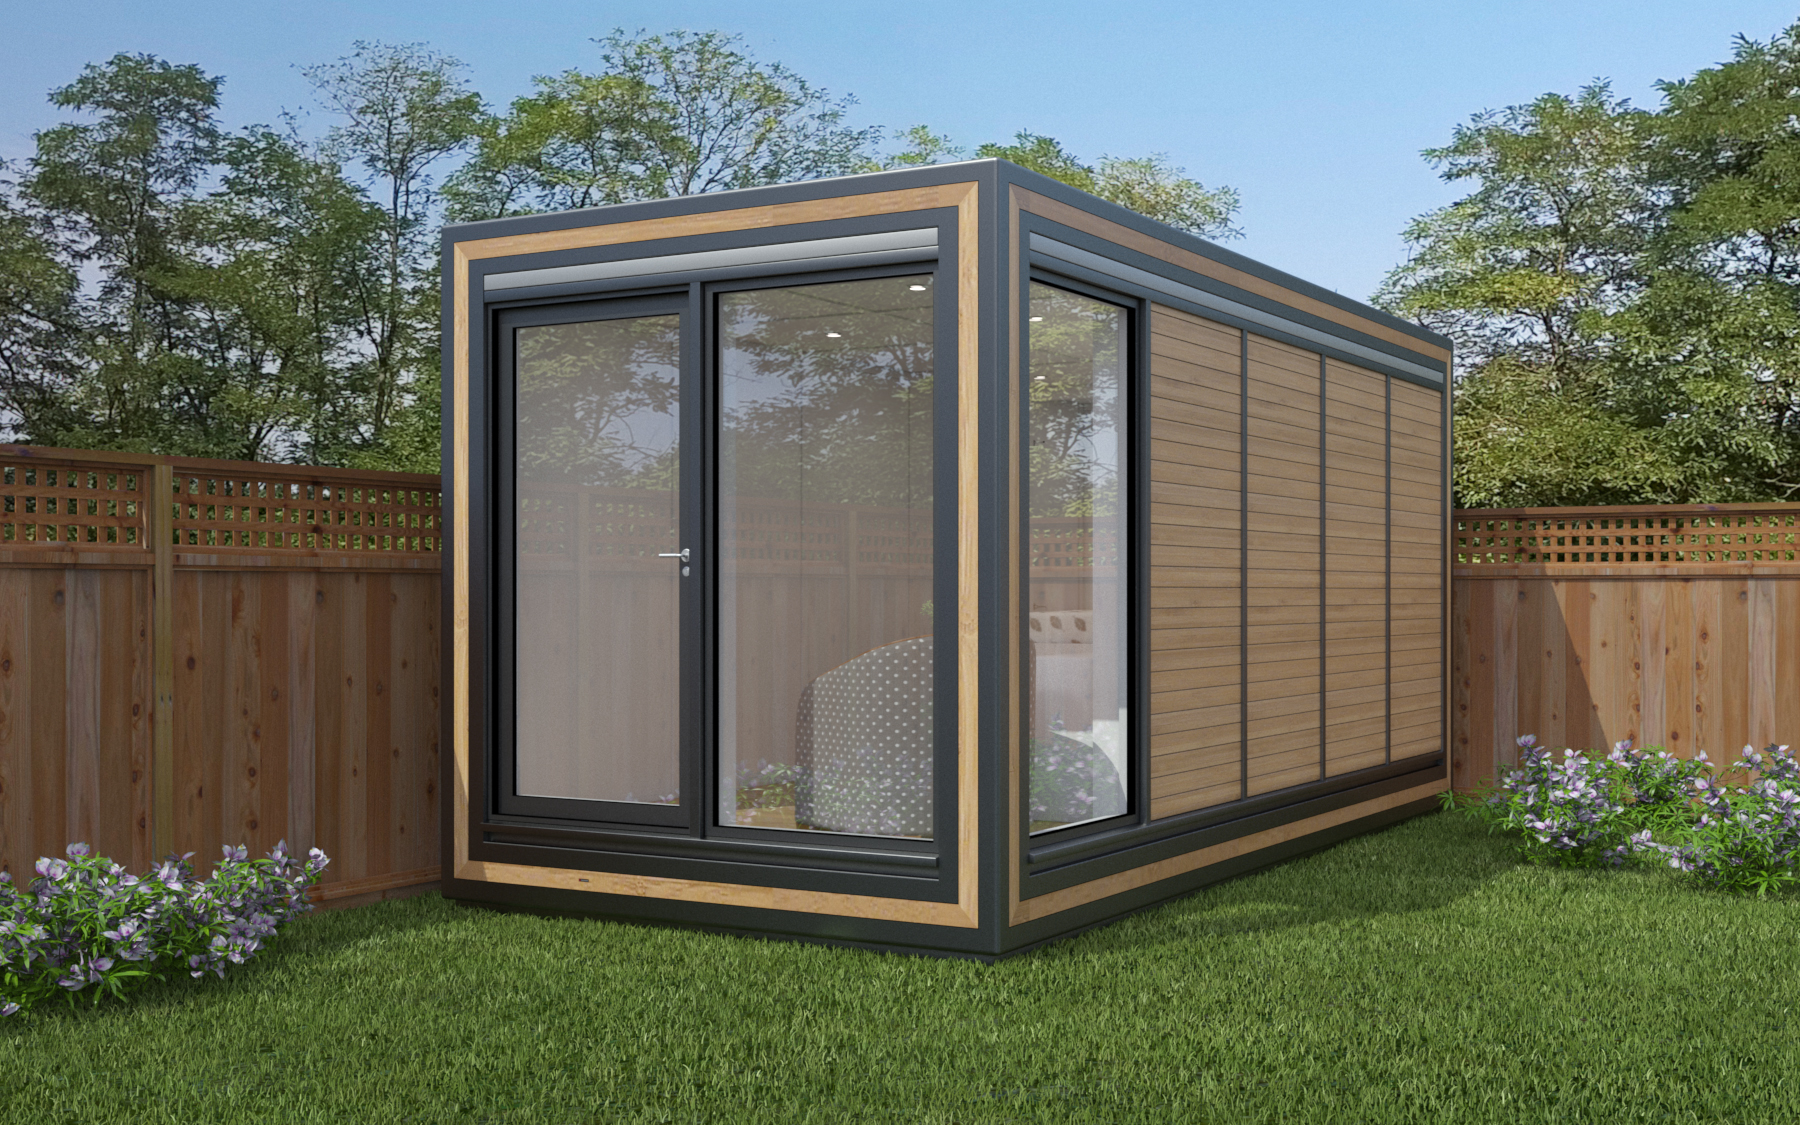 ZEDBOX 250  (2 x 5)  Internal Size: 2117x 5330  External Size: 2587 x 5800  Bed Options: Single or Double  Kitchen Options: Micro Kitchen  Wet Room Options: Yes  Portico: No  Price:  £24,000    Optional Extras    Request Zedbox Catalogue